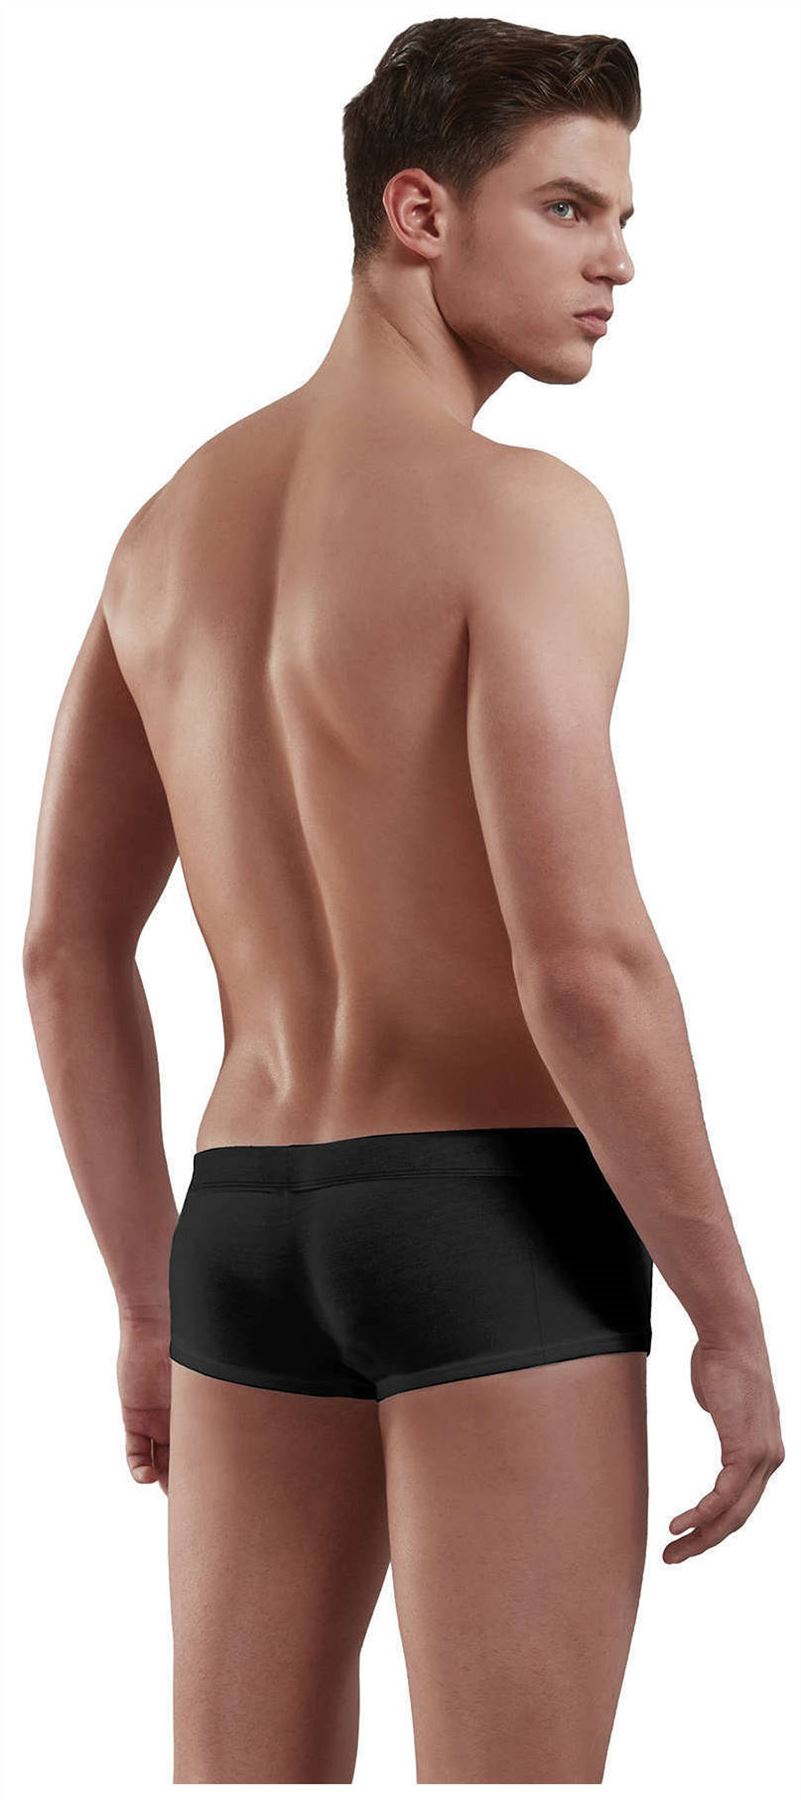 Doreanse-1750-Adonis-Anatomical-Trunk-Supportive-Enhancing-Men-039-s-underwear miniatura 13